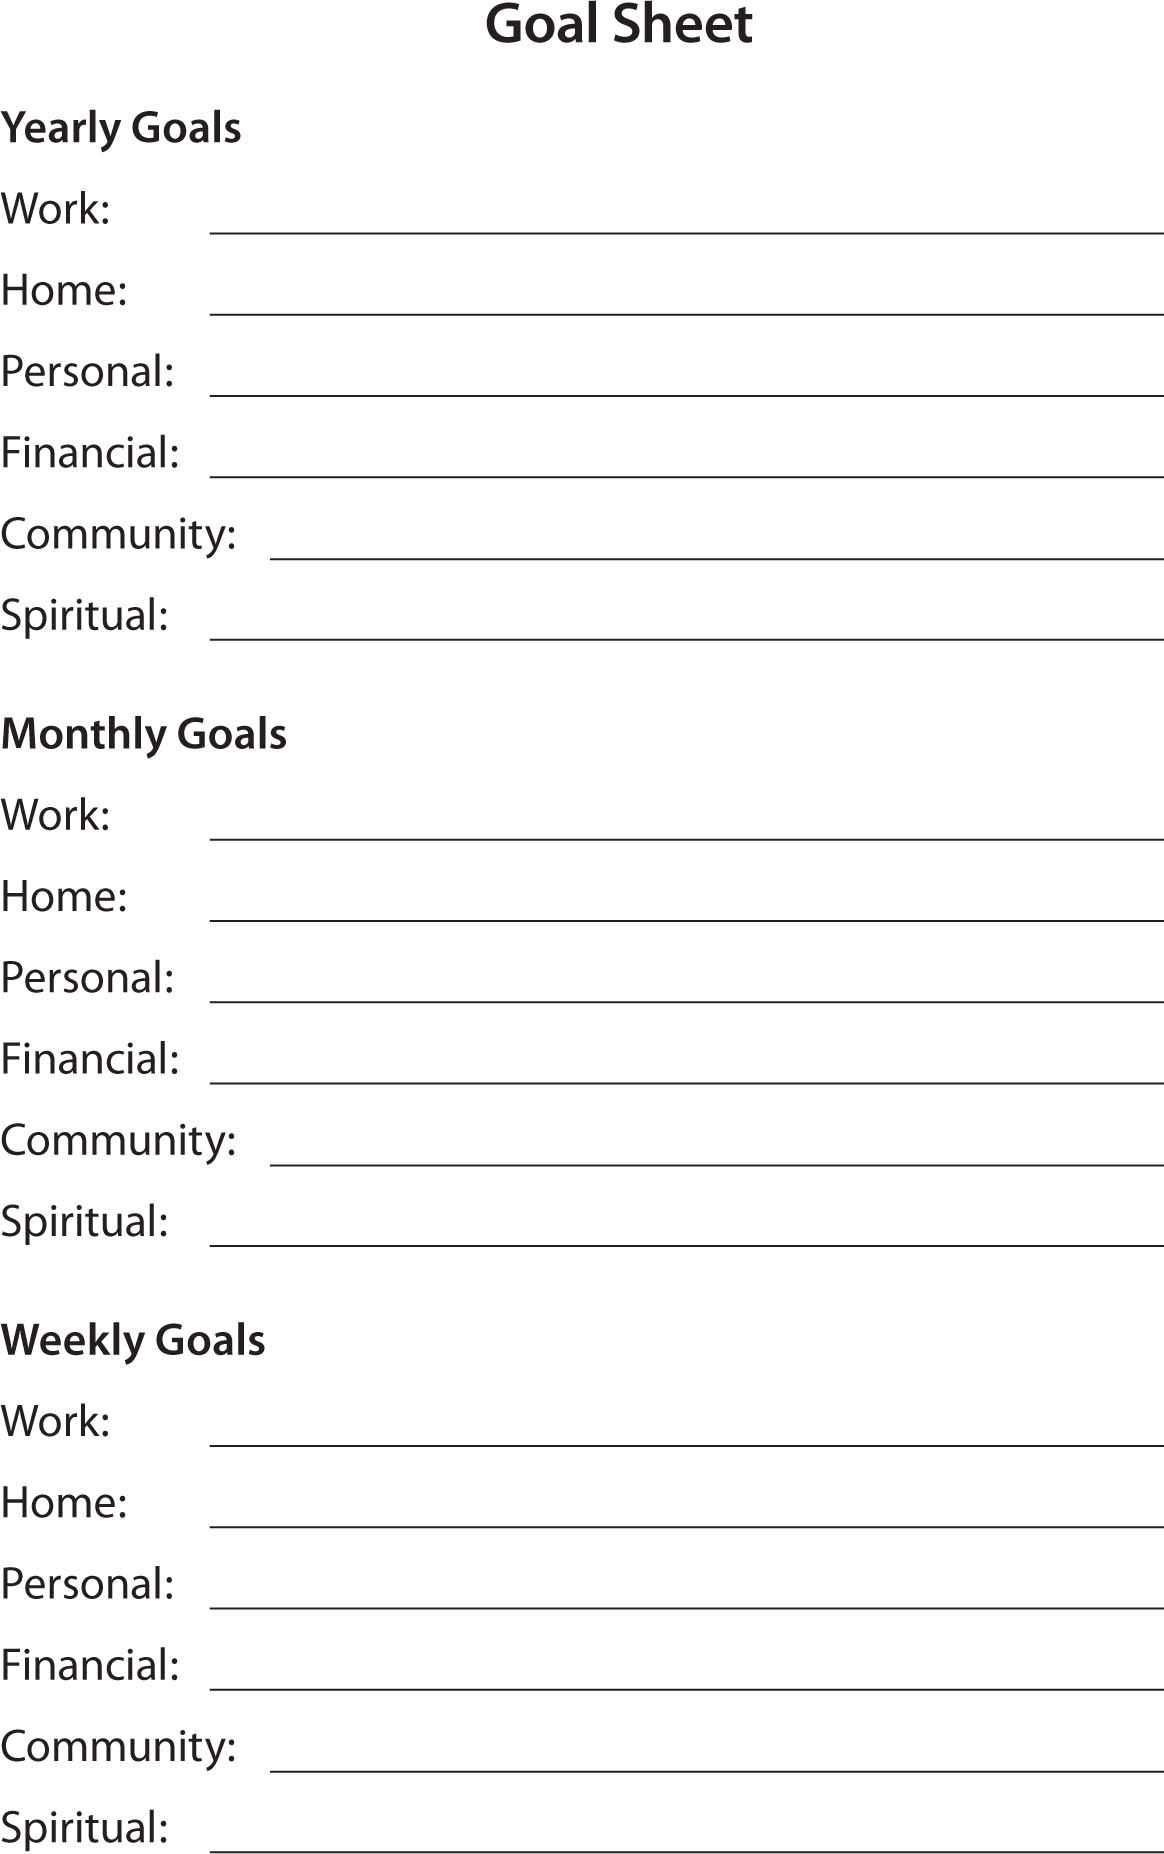 Goal Sheet  Being A Sales Rep  Dealership Ideas